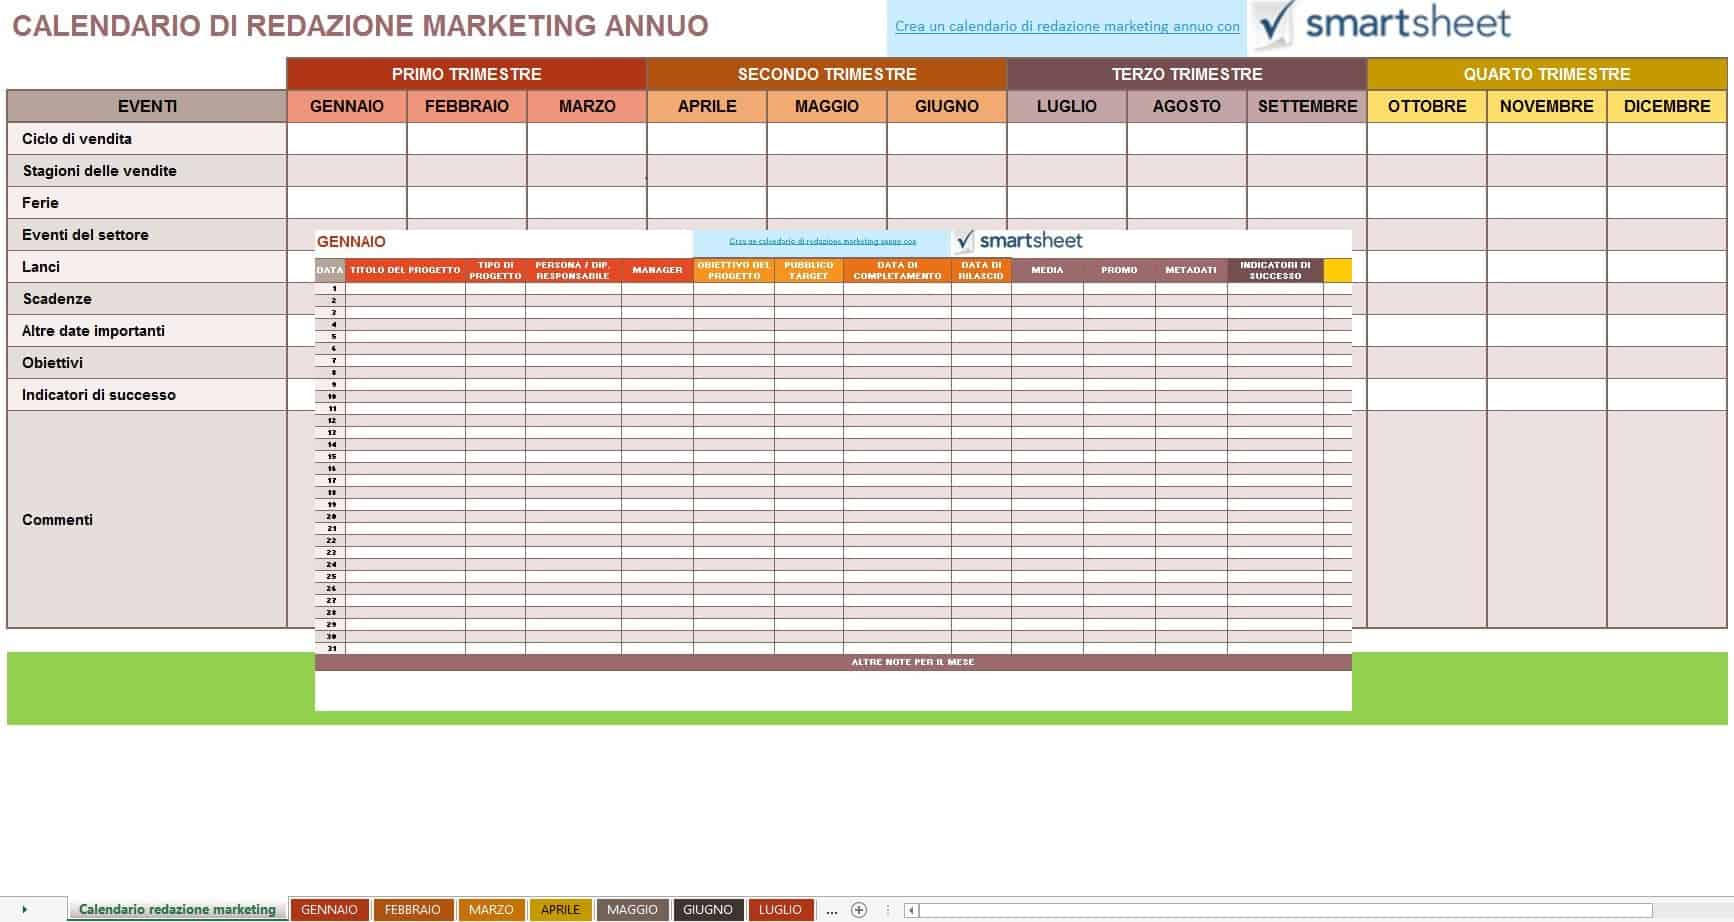 Calendario Anno 2018 Da Stampare.9 Modelli Di Calendari Di Marketing Gratuiti Di Excel